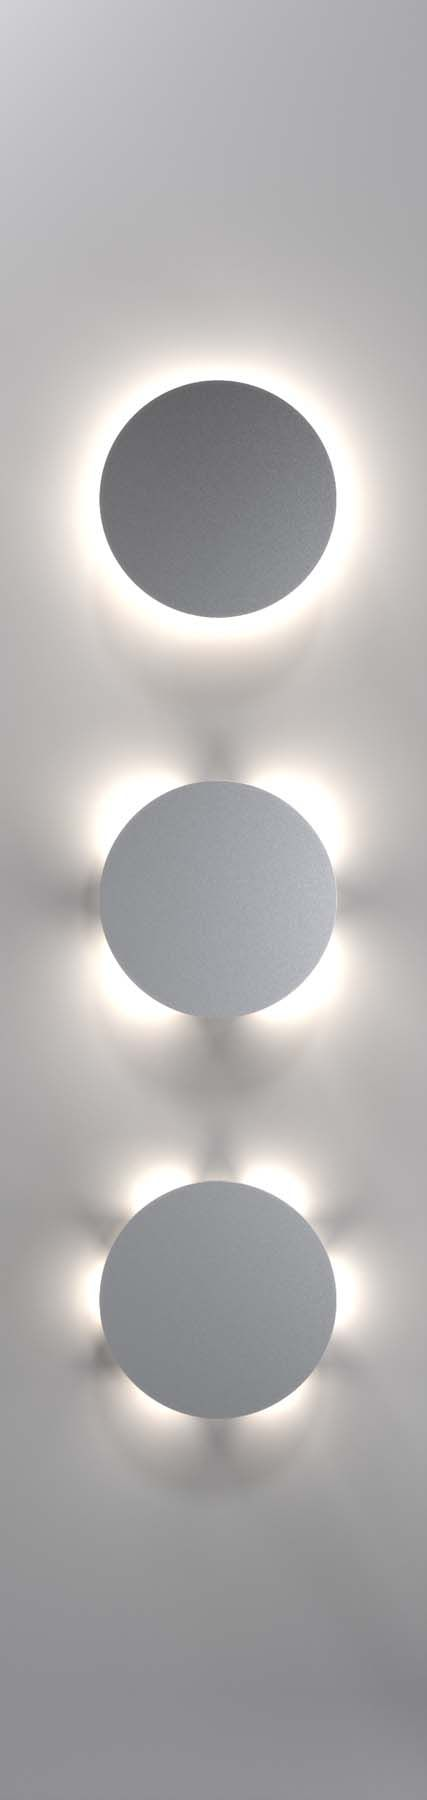 Uno Disc   Wall lamp from Nordlux   Designed by Bønnelycke mdd   Nordic and Scandinavian style   Light   Decoration   Designed in Denmark